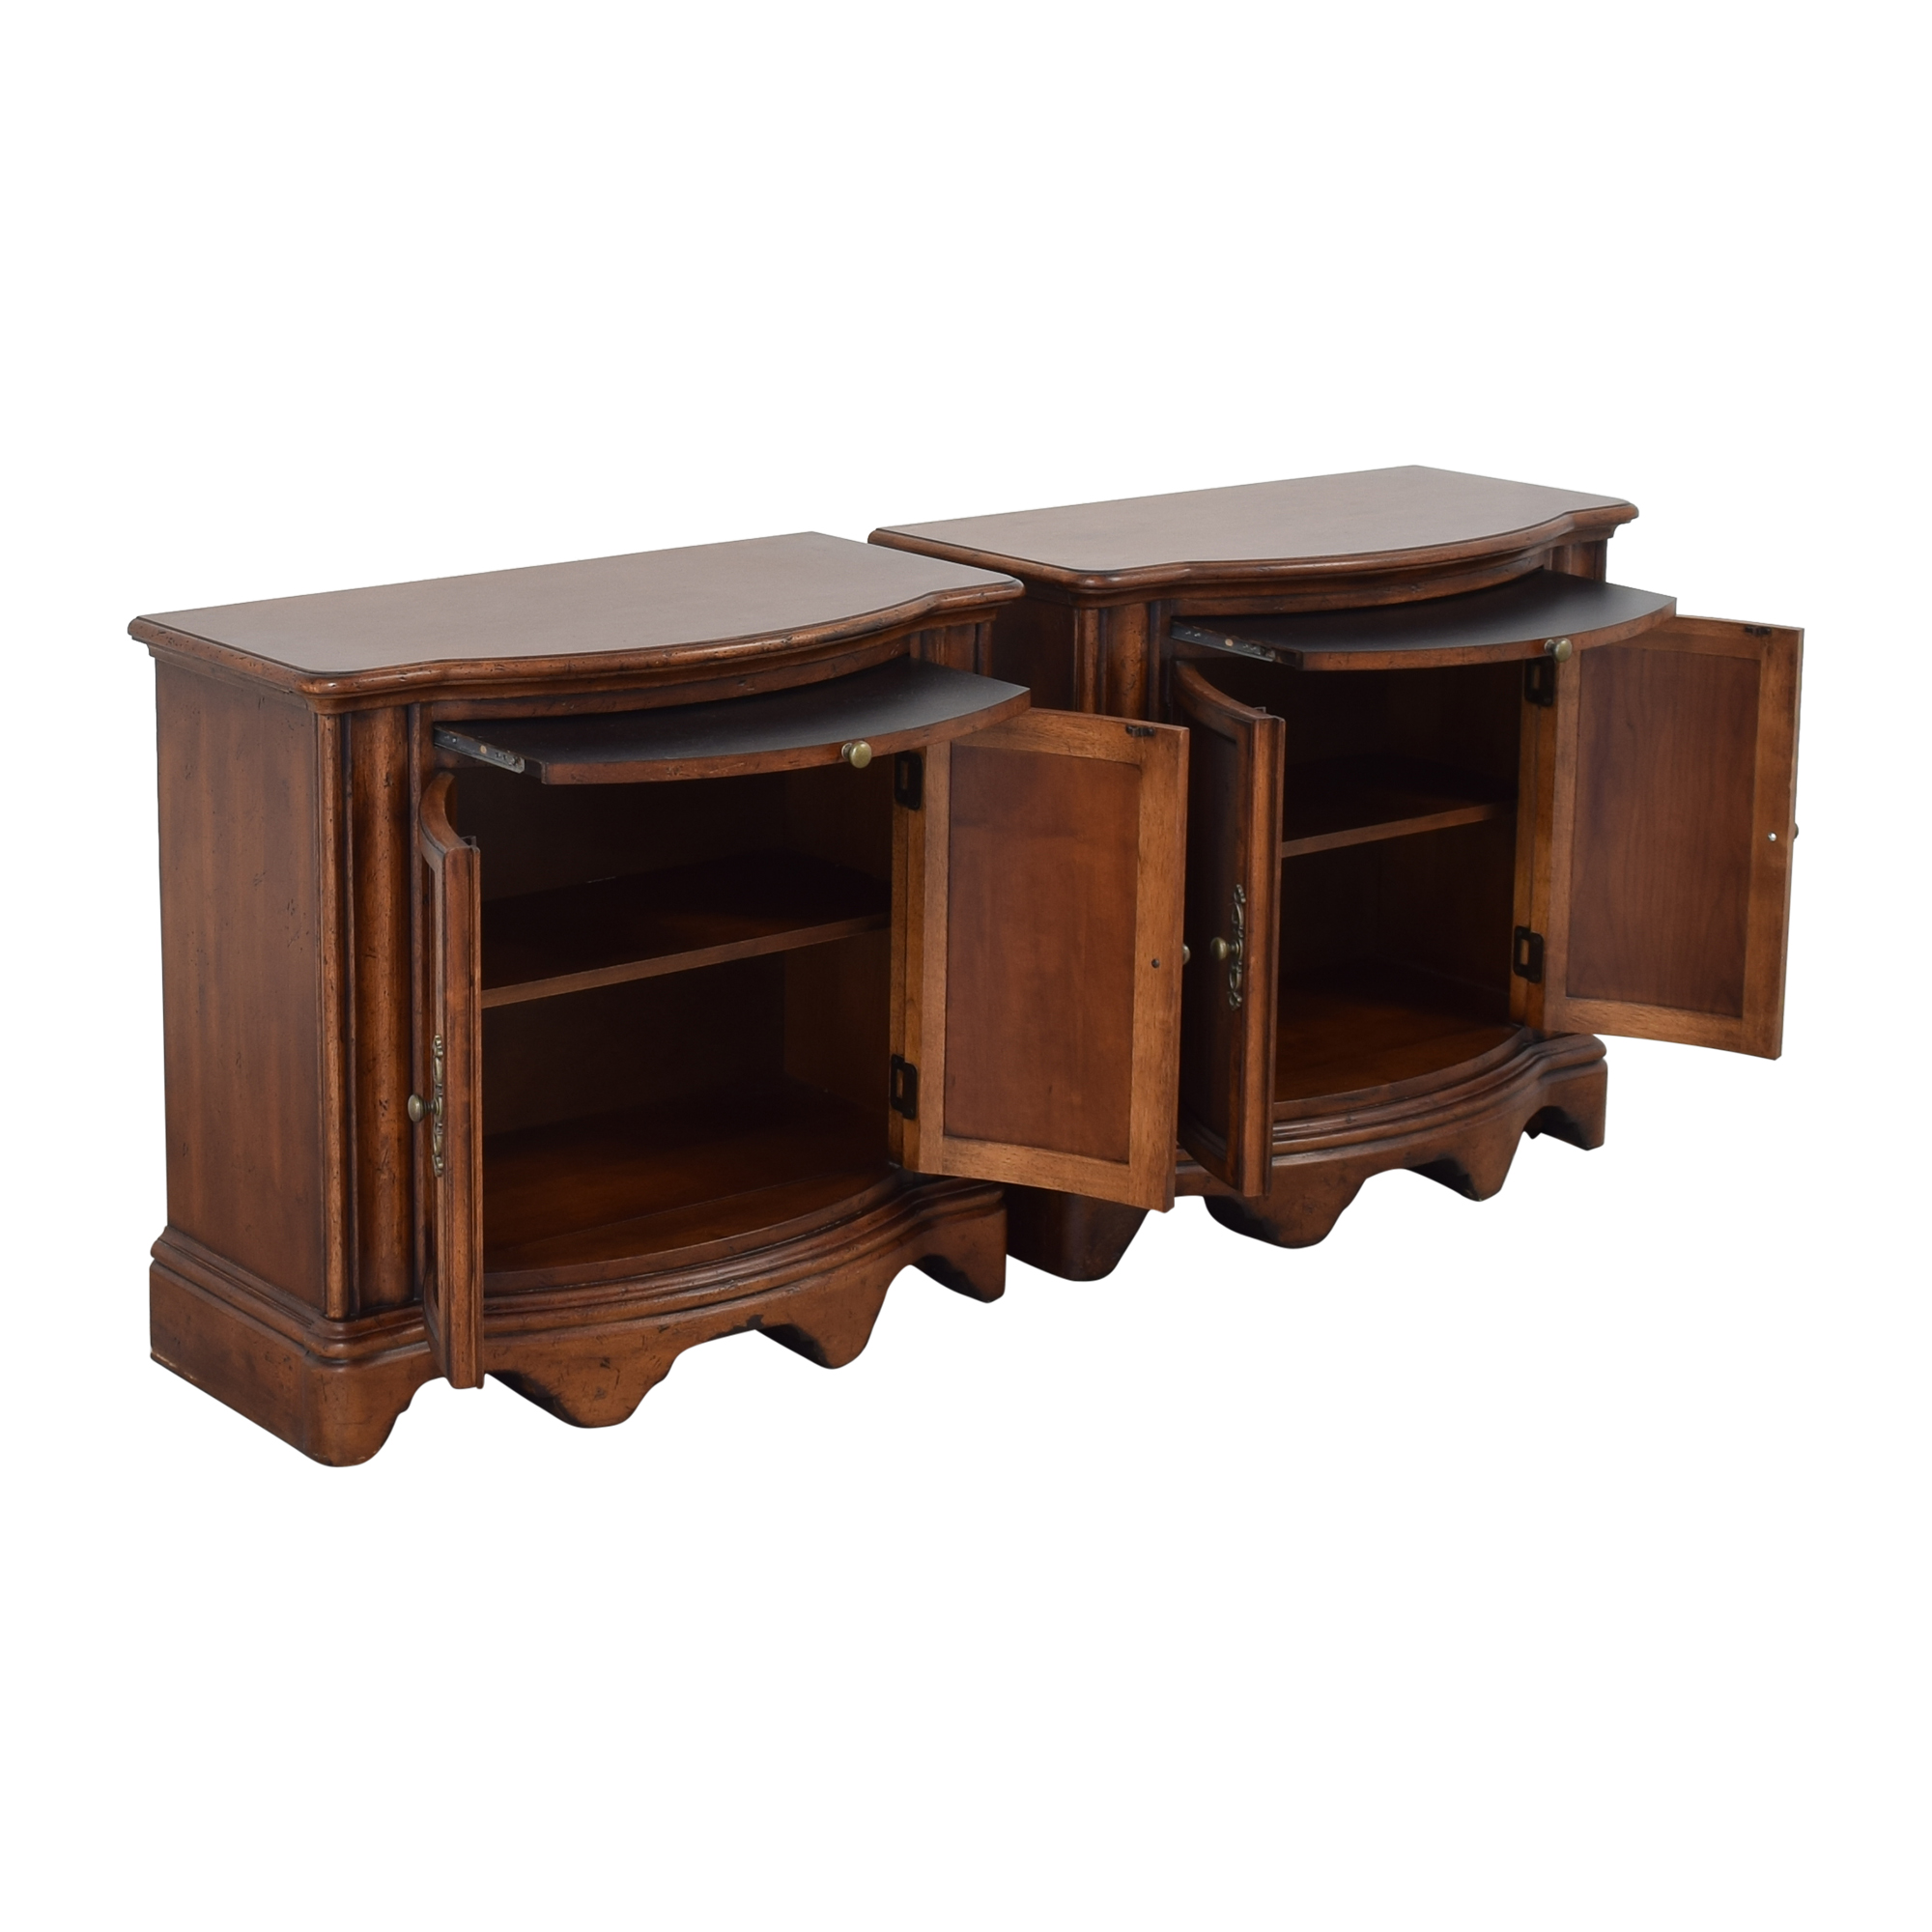 Universal Furniture Universal Furniture Nightstands nyc